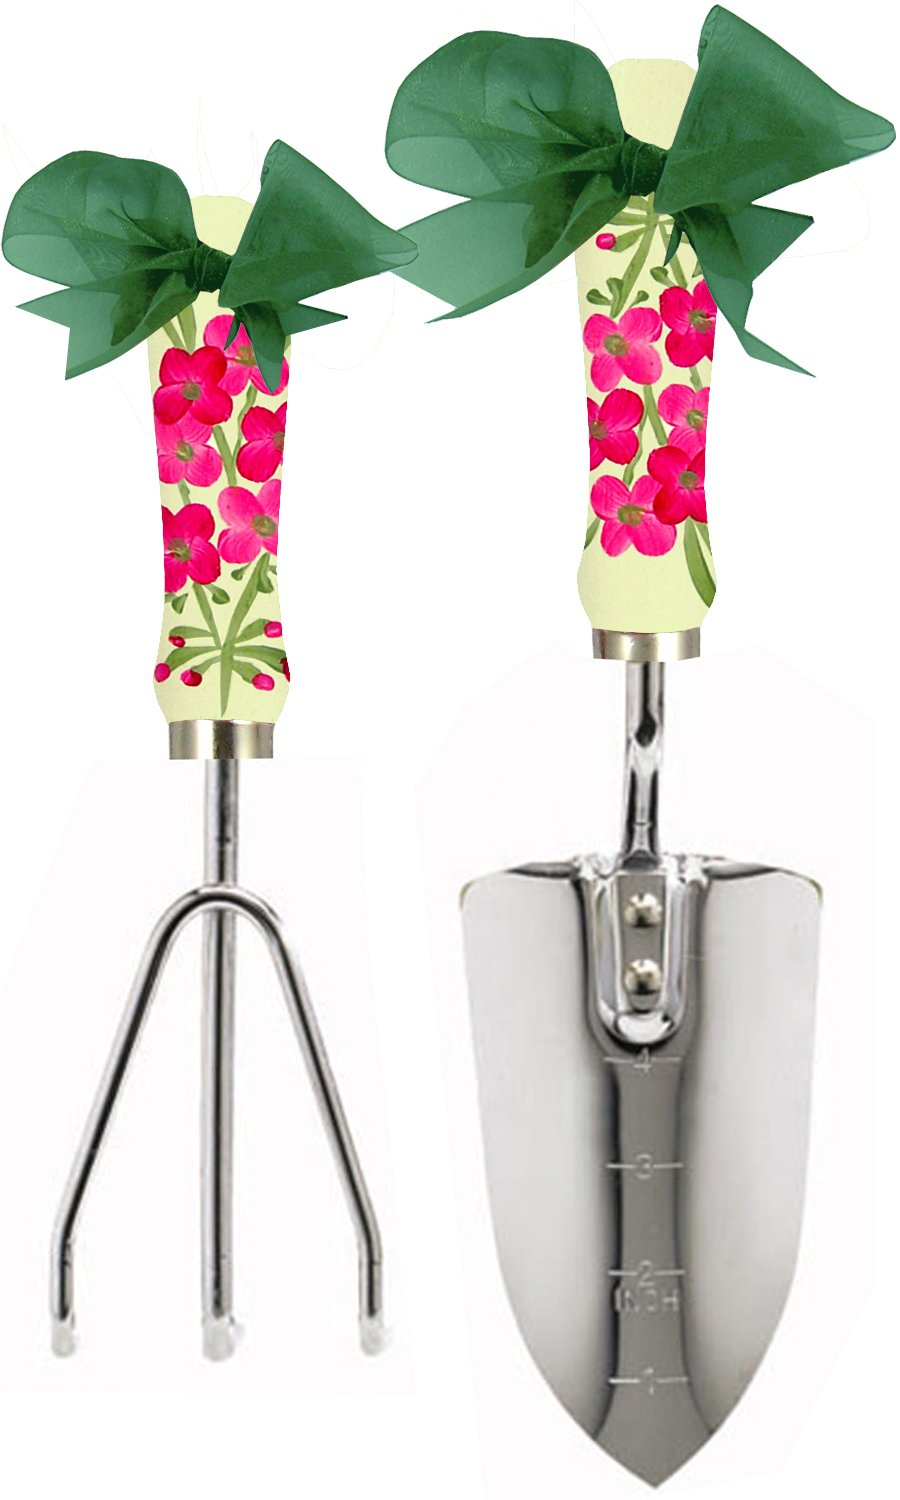 Cute Tools Stainless Steel Garden Shovel and Three Prong Rake - Landscaping Instrument, Hand Painted Wooden Handle In The USA, Durable Yard and Gardening Equipment From CuteTools! - Art For A Cause, Pink Germanium